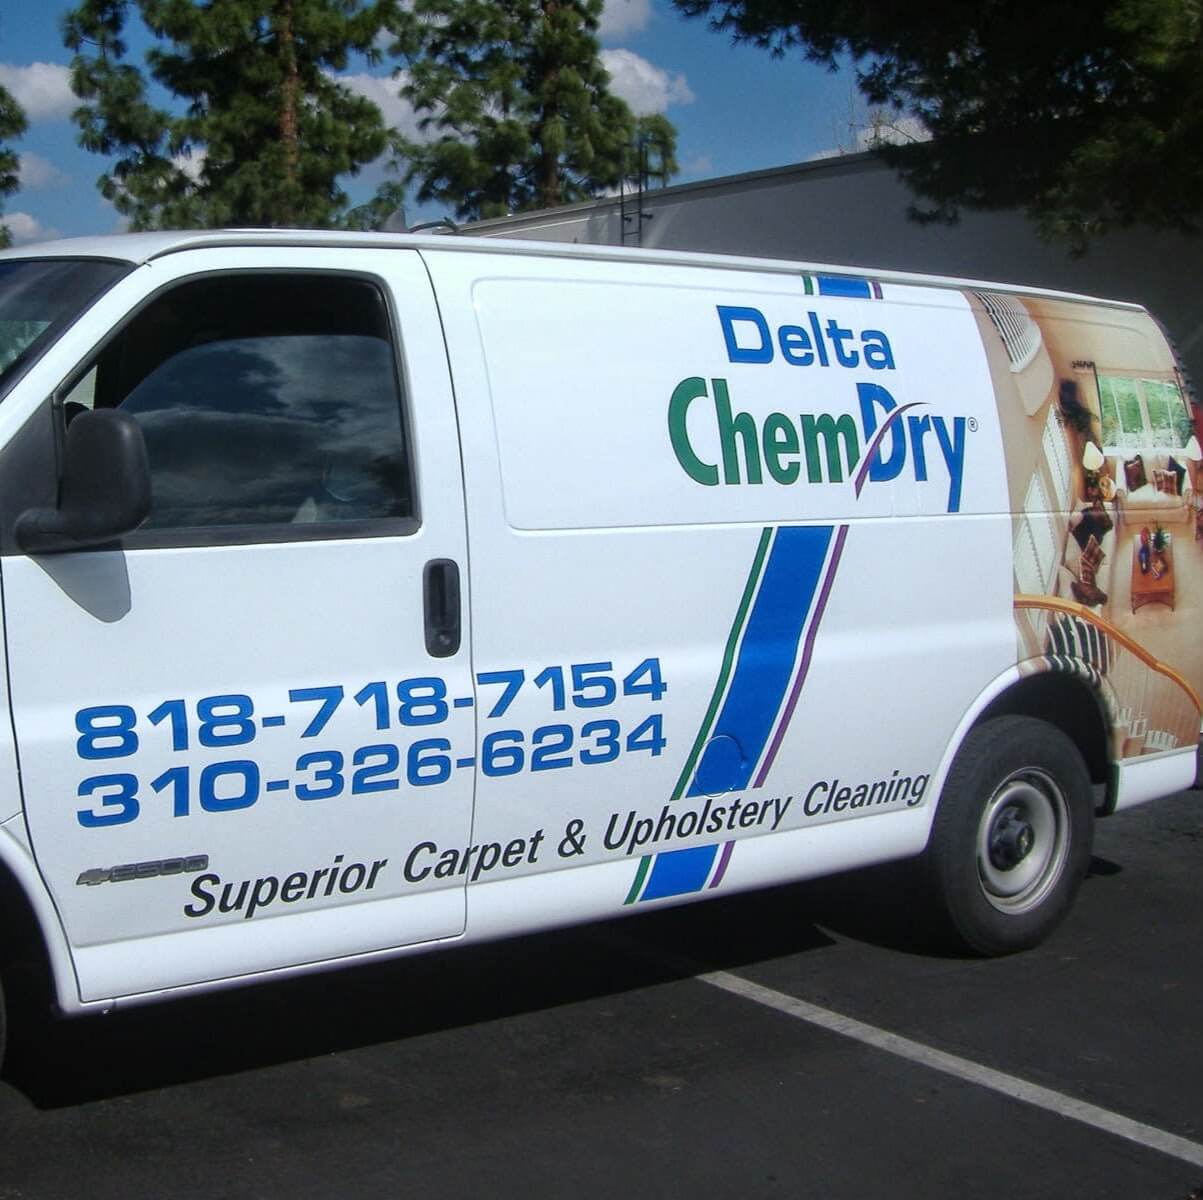 National City Car Wash Coupons: Delta Chem-Dry Carpet & Upholstery